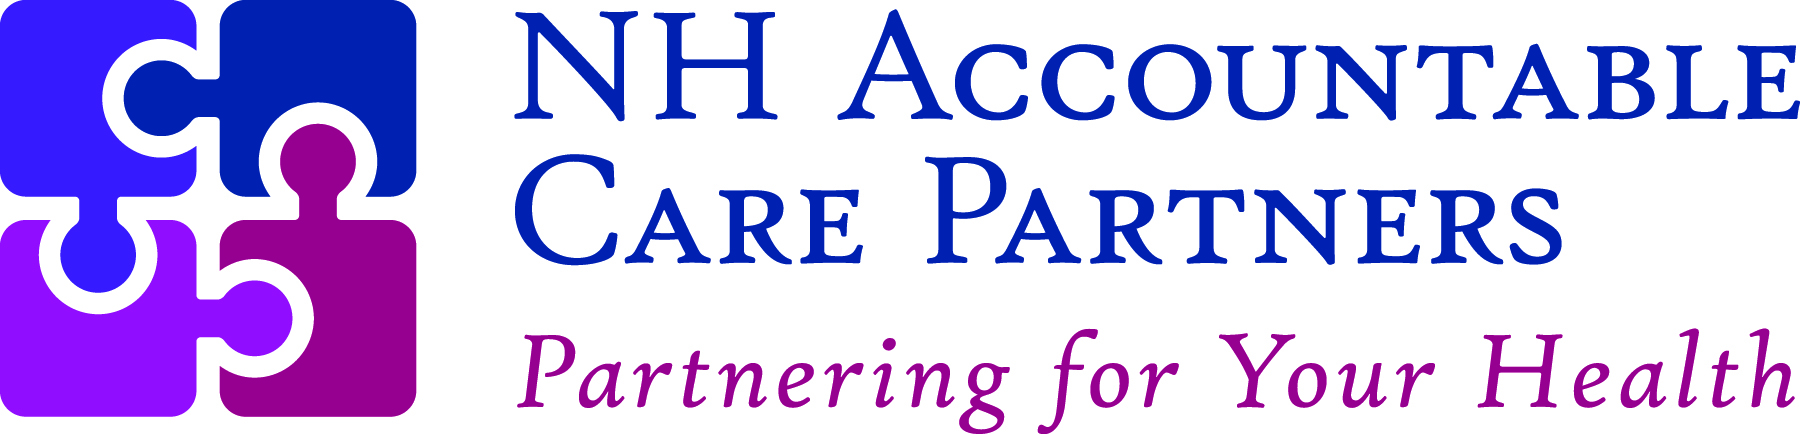 NH Accountable Care Partners